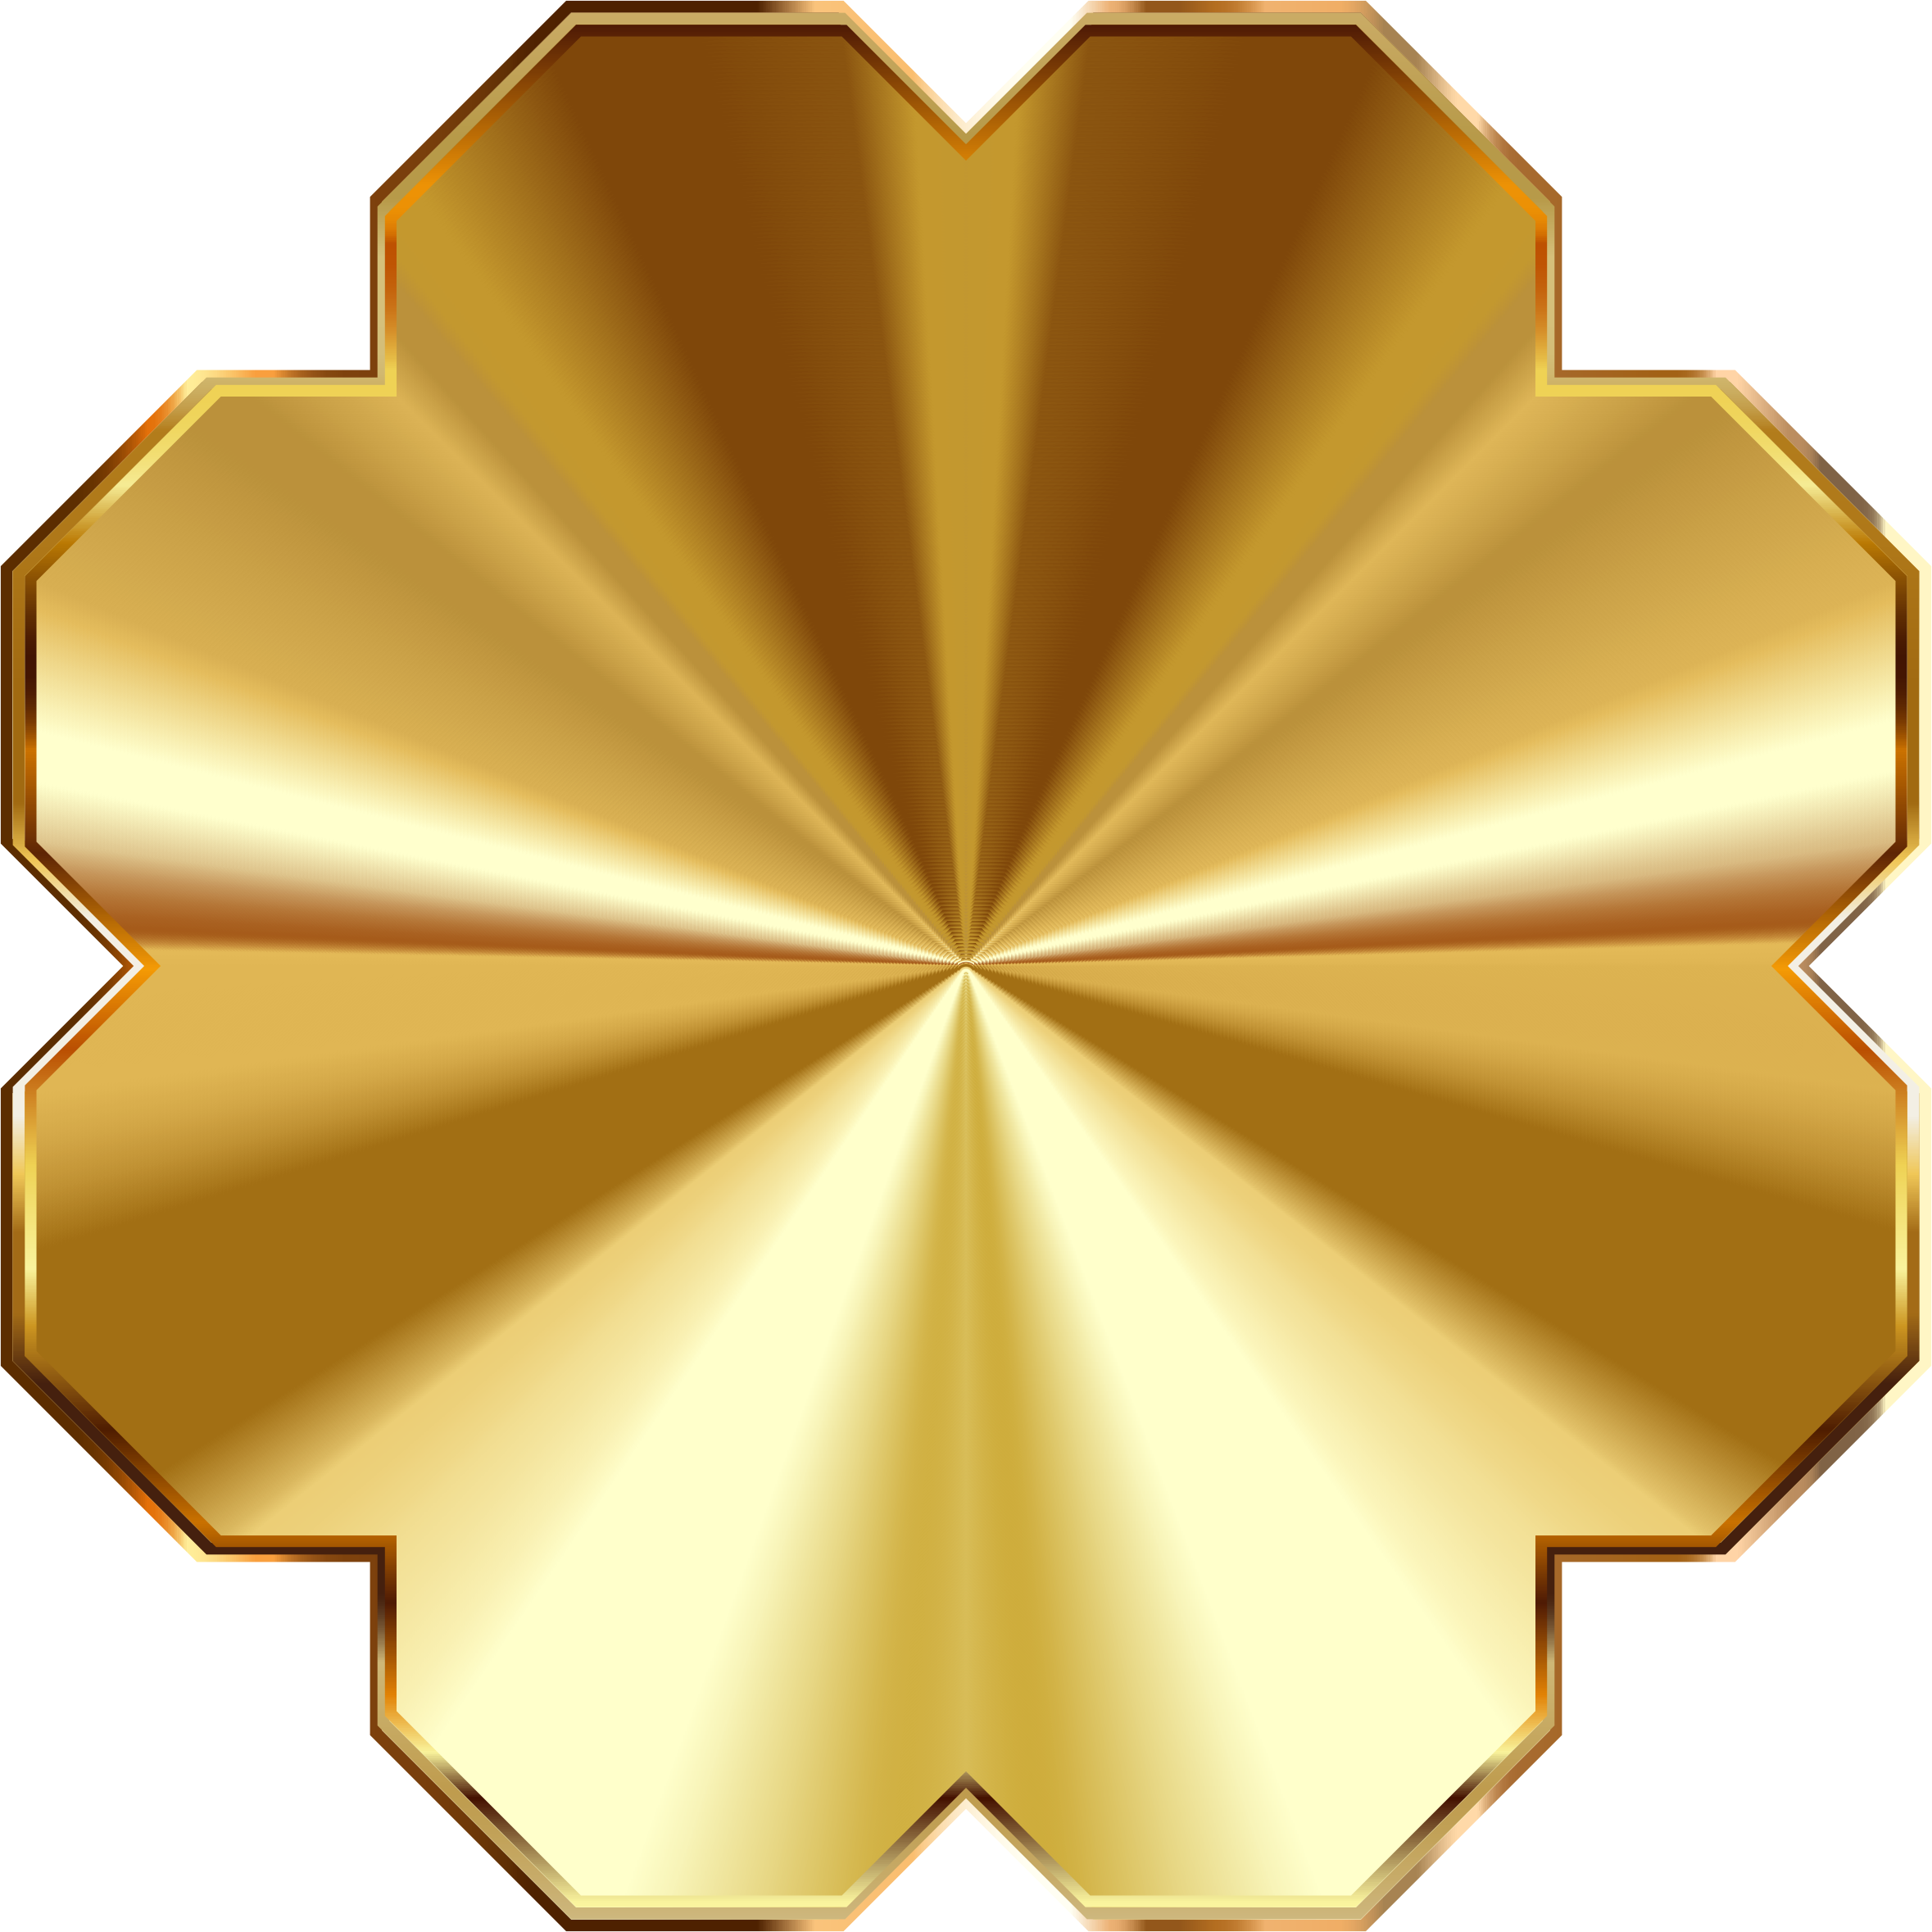 Gold backgrounds png. Plaque no background icons